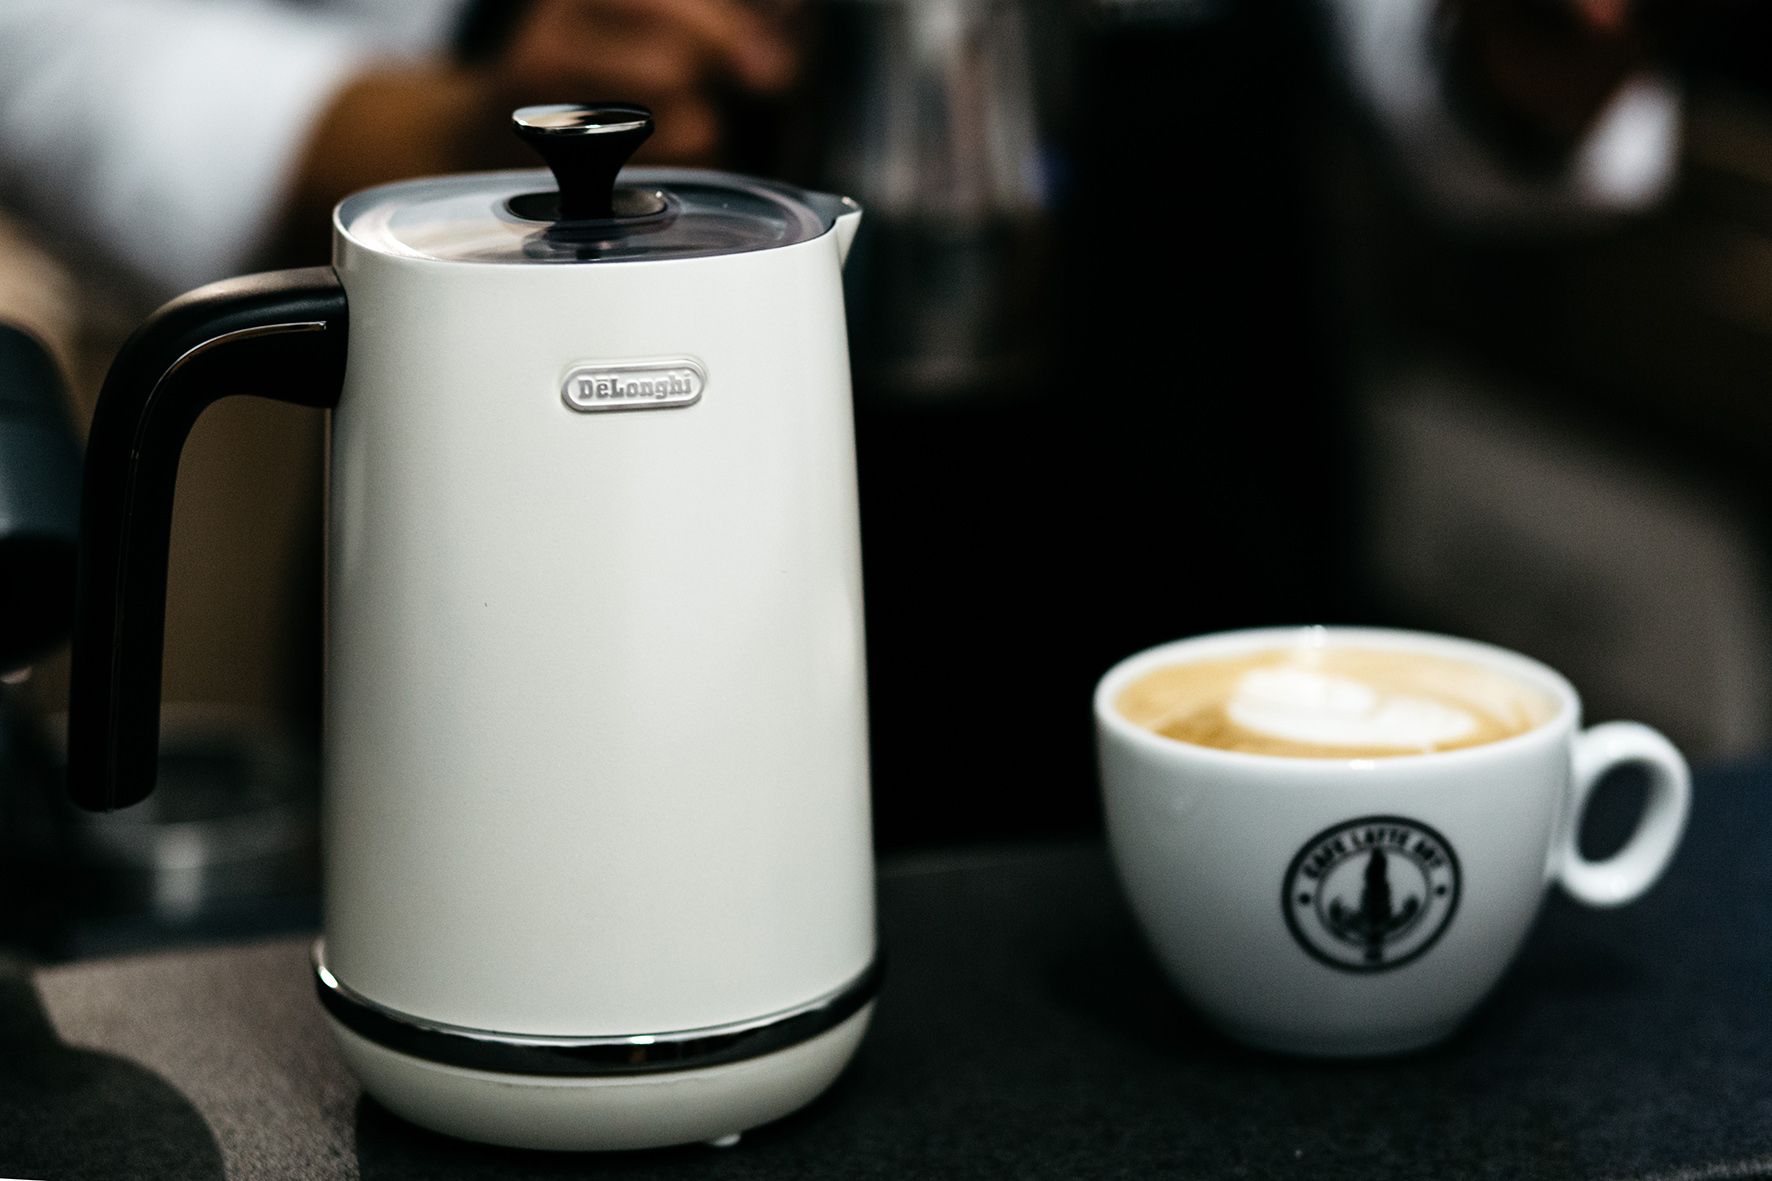 _De'Longhi_Barista for one day_©Lisa Leutner_14